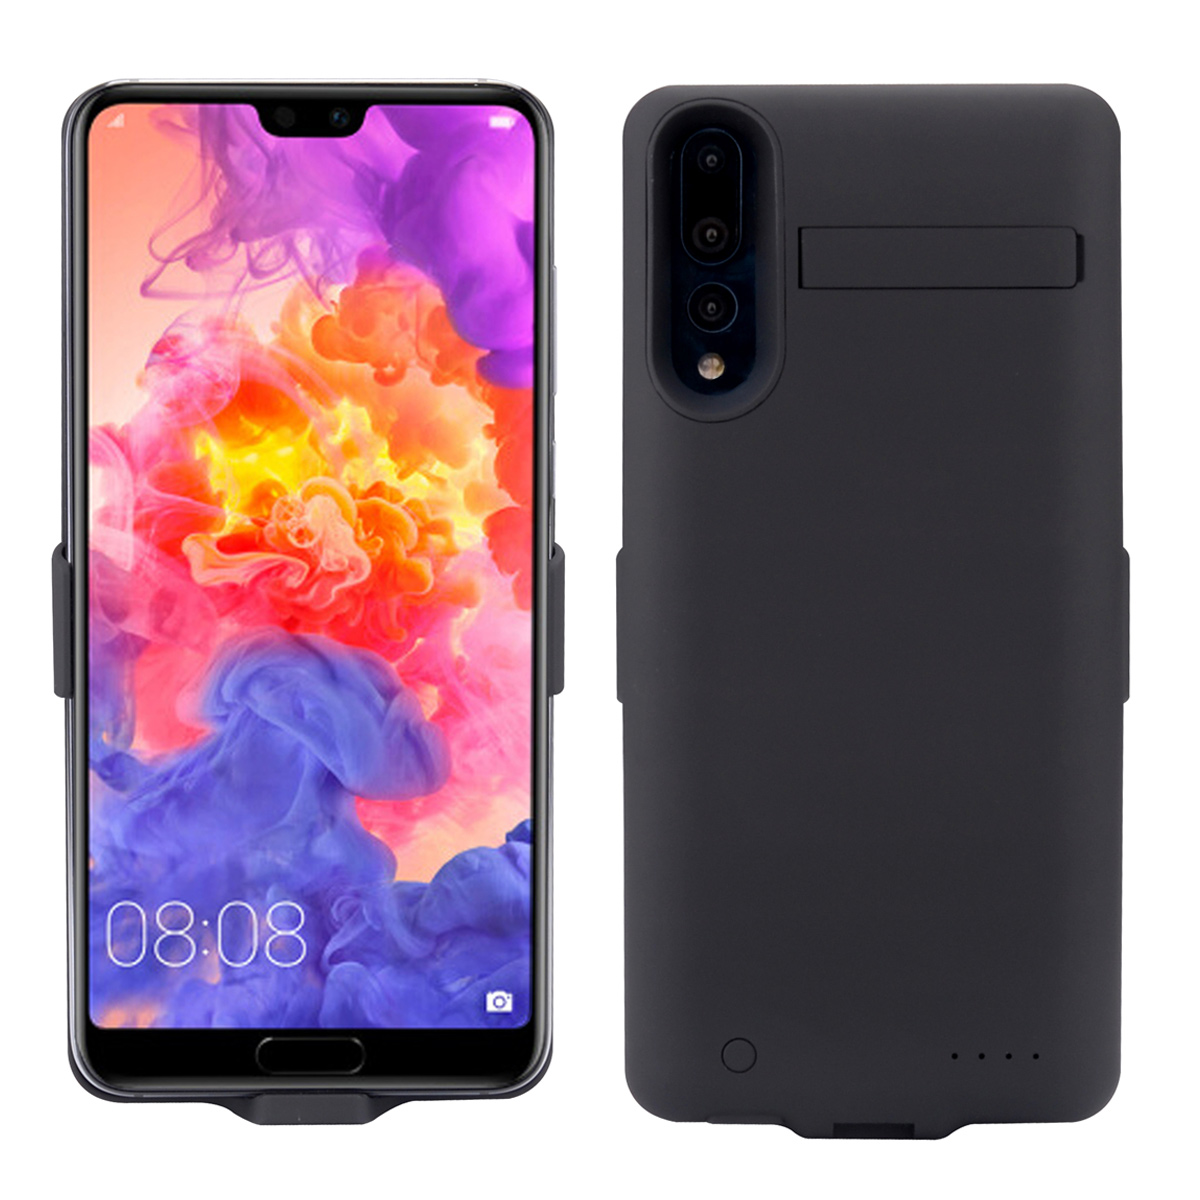 CASEWIN Battery Charger Case For <font><b>Xiaomi</b></font> Mi 6X <font><b>6000mAh</b></font> <font><b>Power</b></font> <font><b>Bank</b></font> Charging Case External Backup Charger <font><b>Power</b></font> <font><b>bank</b></font> phone case image